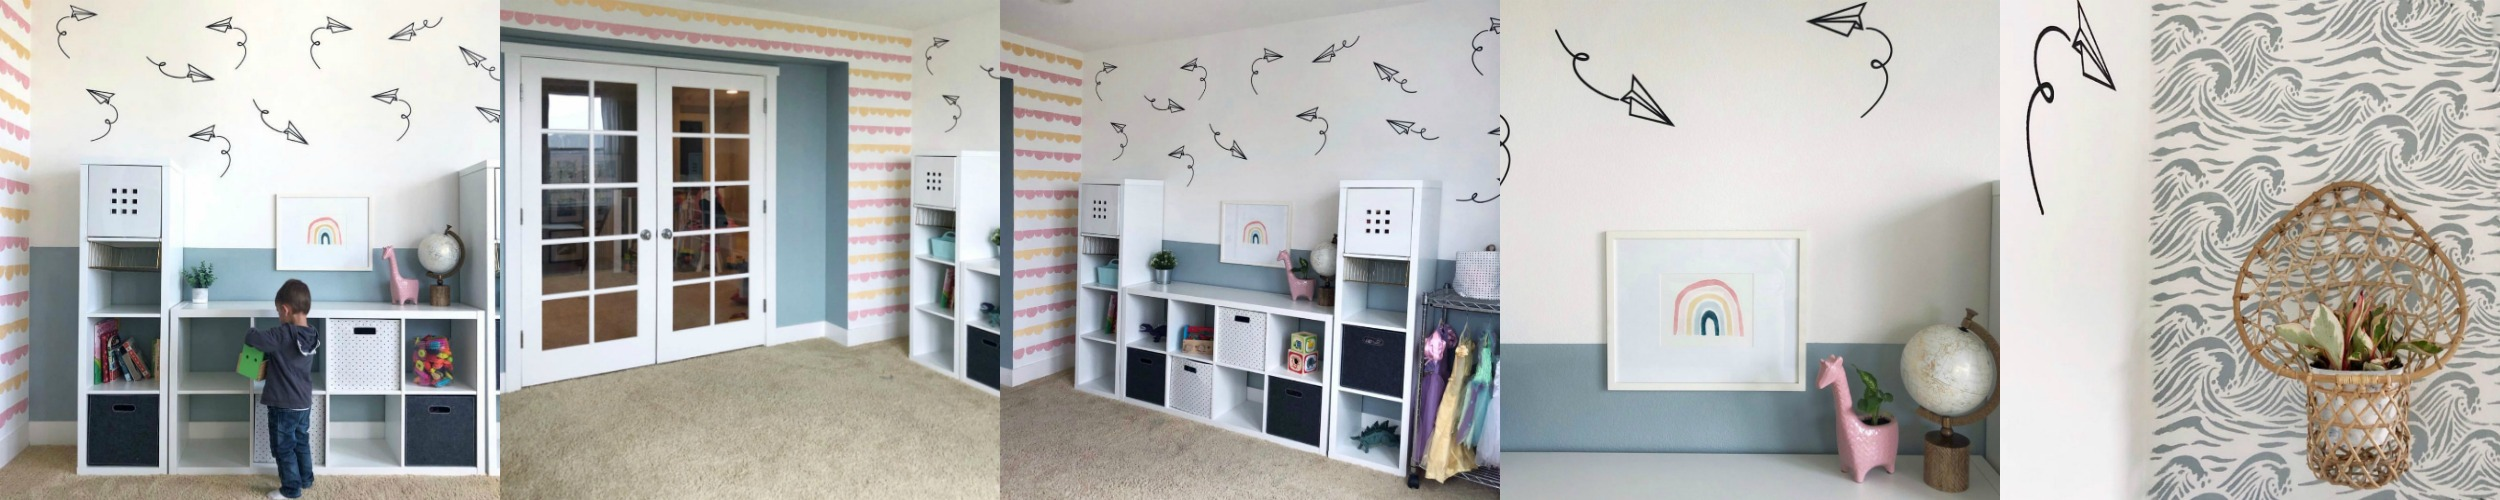 "In her own words, Kristen is ""A full time mom with a part time passion for creating fun, colorful and budget friendly updates in my home."" She recently took on, and completed the #oneroomchallenge and created this oh, so great playroom, featuring our paper plane wall decals in black. She has a  BLOG  with DIY, budget friendly projects. Head on over and see what she's up to now. Thank you, Kristen for sharing."